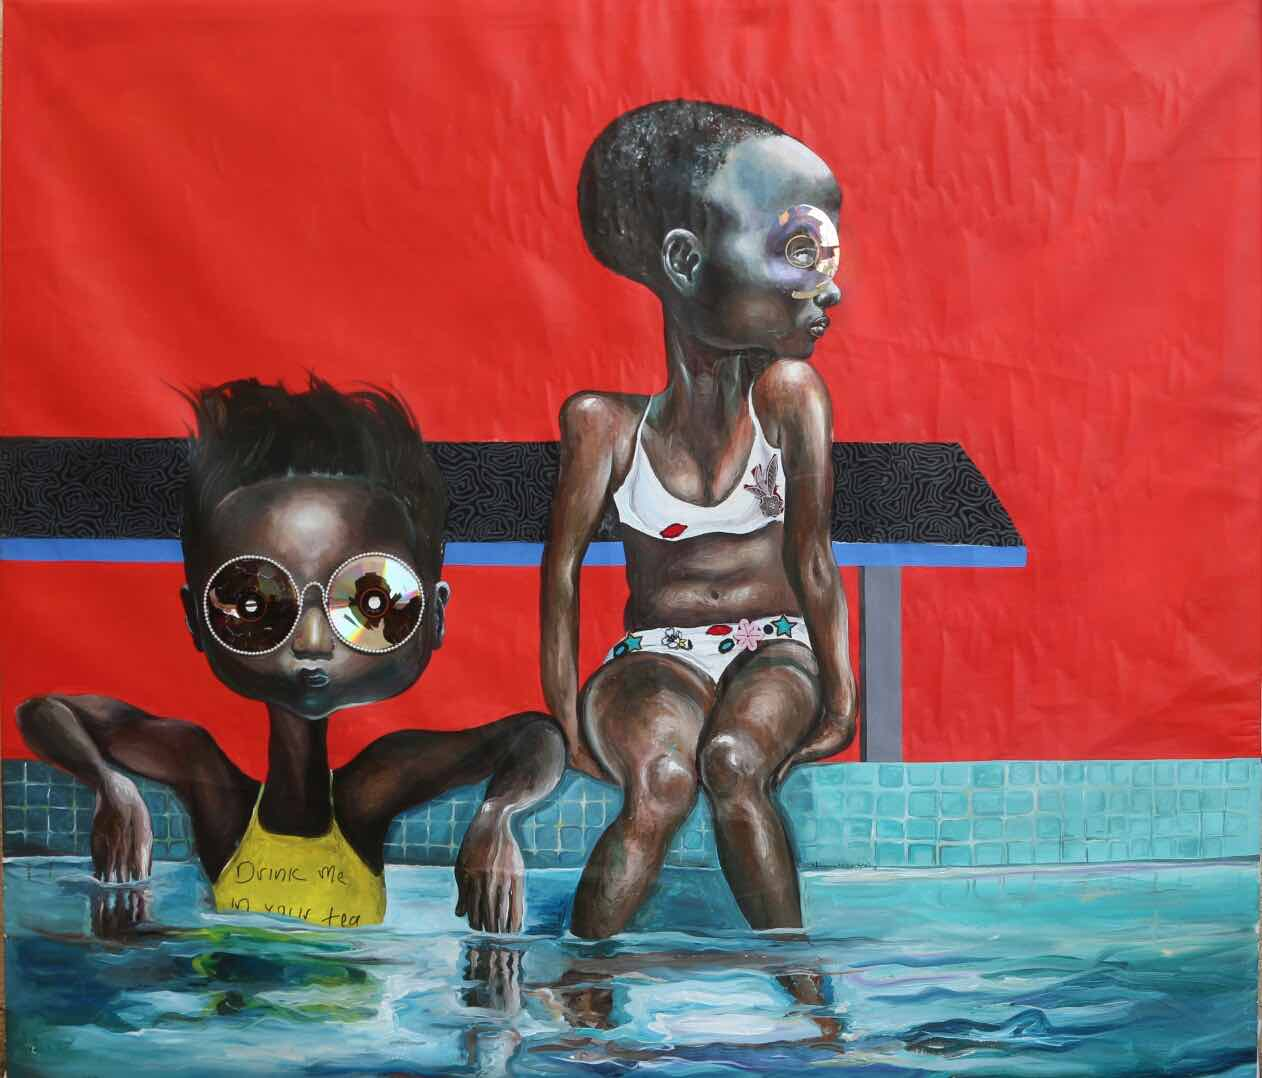 Ndidi Emefiele, Untitled I, 2016, Mixed media on canvas, 120 x 100 cm / 47 x 39 in, Courtesy Rosenfeld Porcini